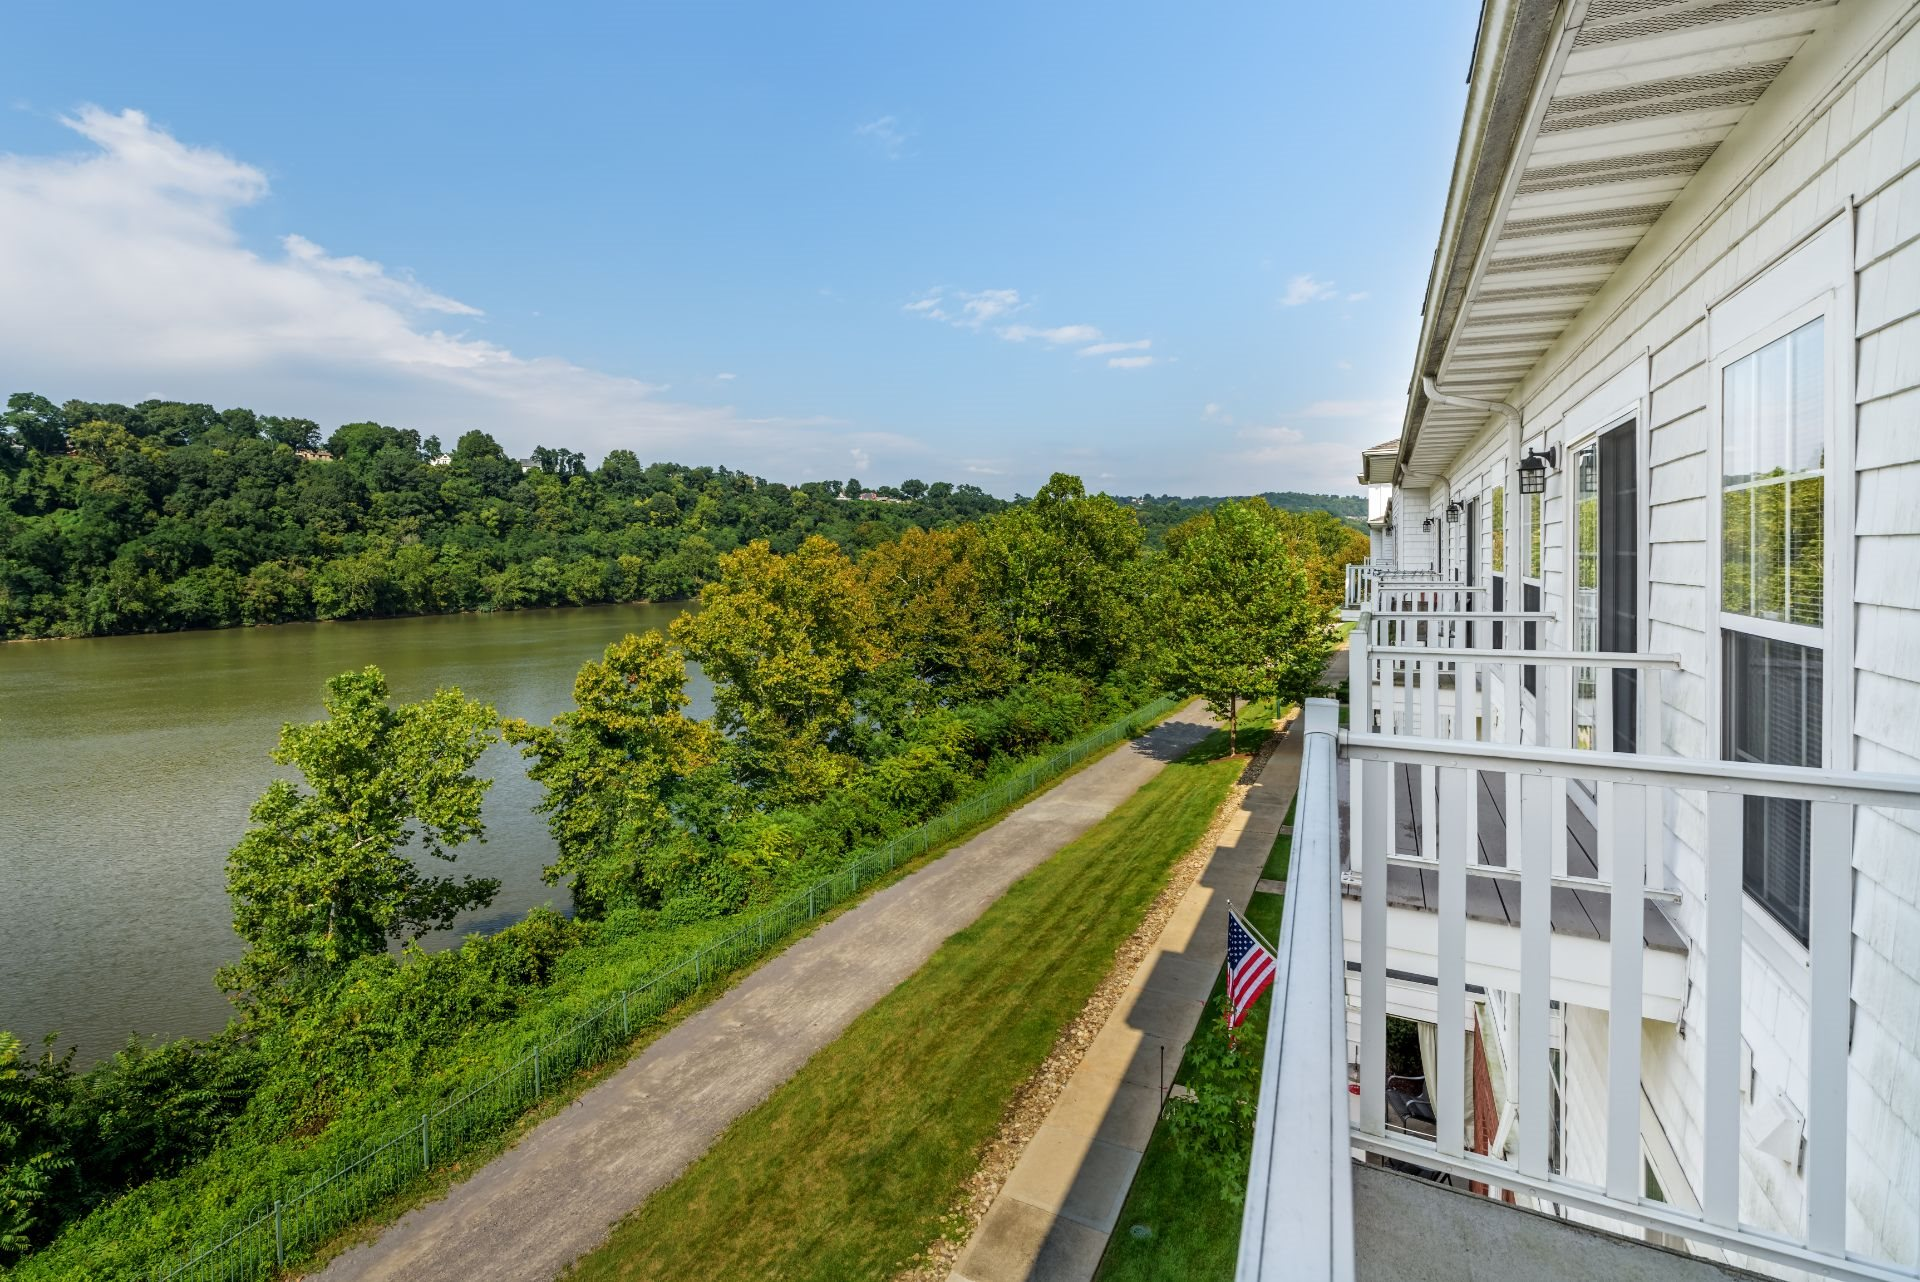 Luxury  Waterfront 1, 2 and 3 Bedroom Apartments and Townhomes with Balconies and River views,  611 E. Waterfront Drive, Munhall, PA 15120, short commute to Downtown Pittsburgh